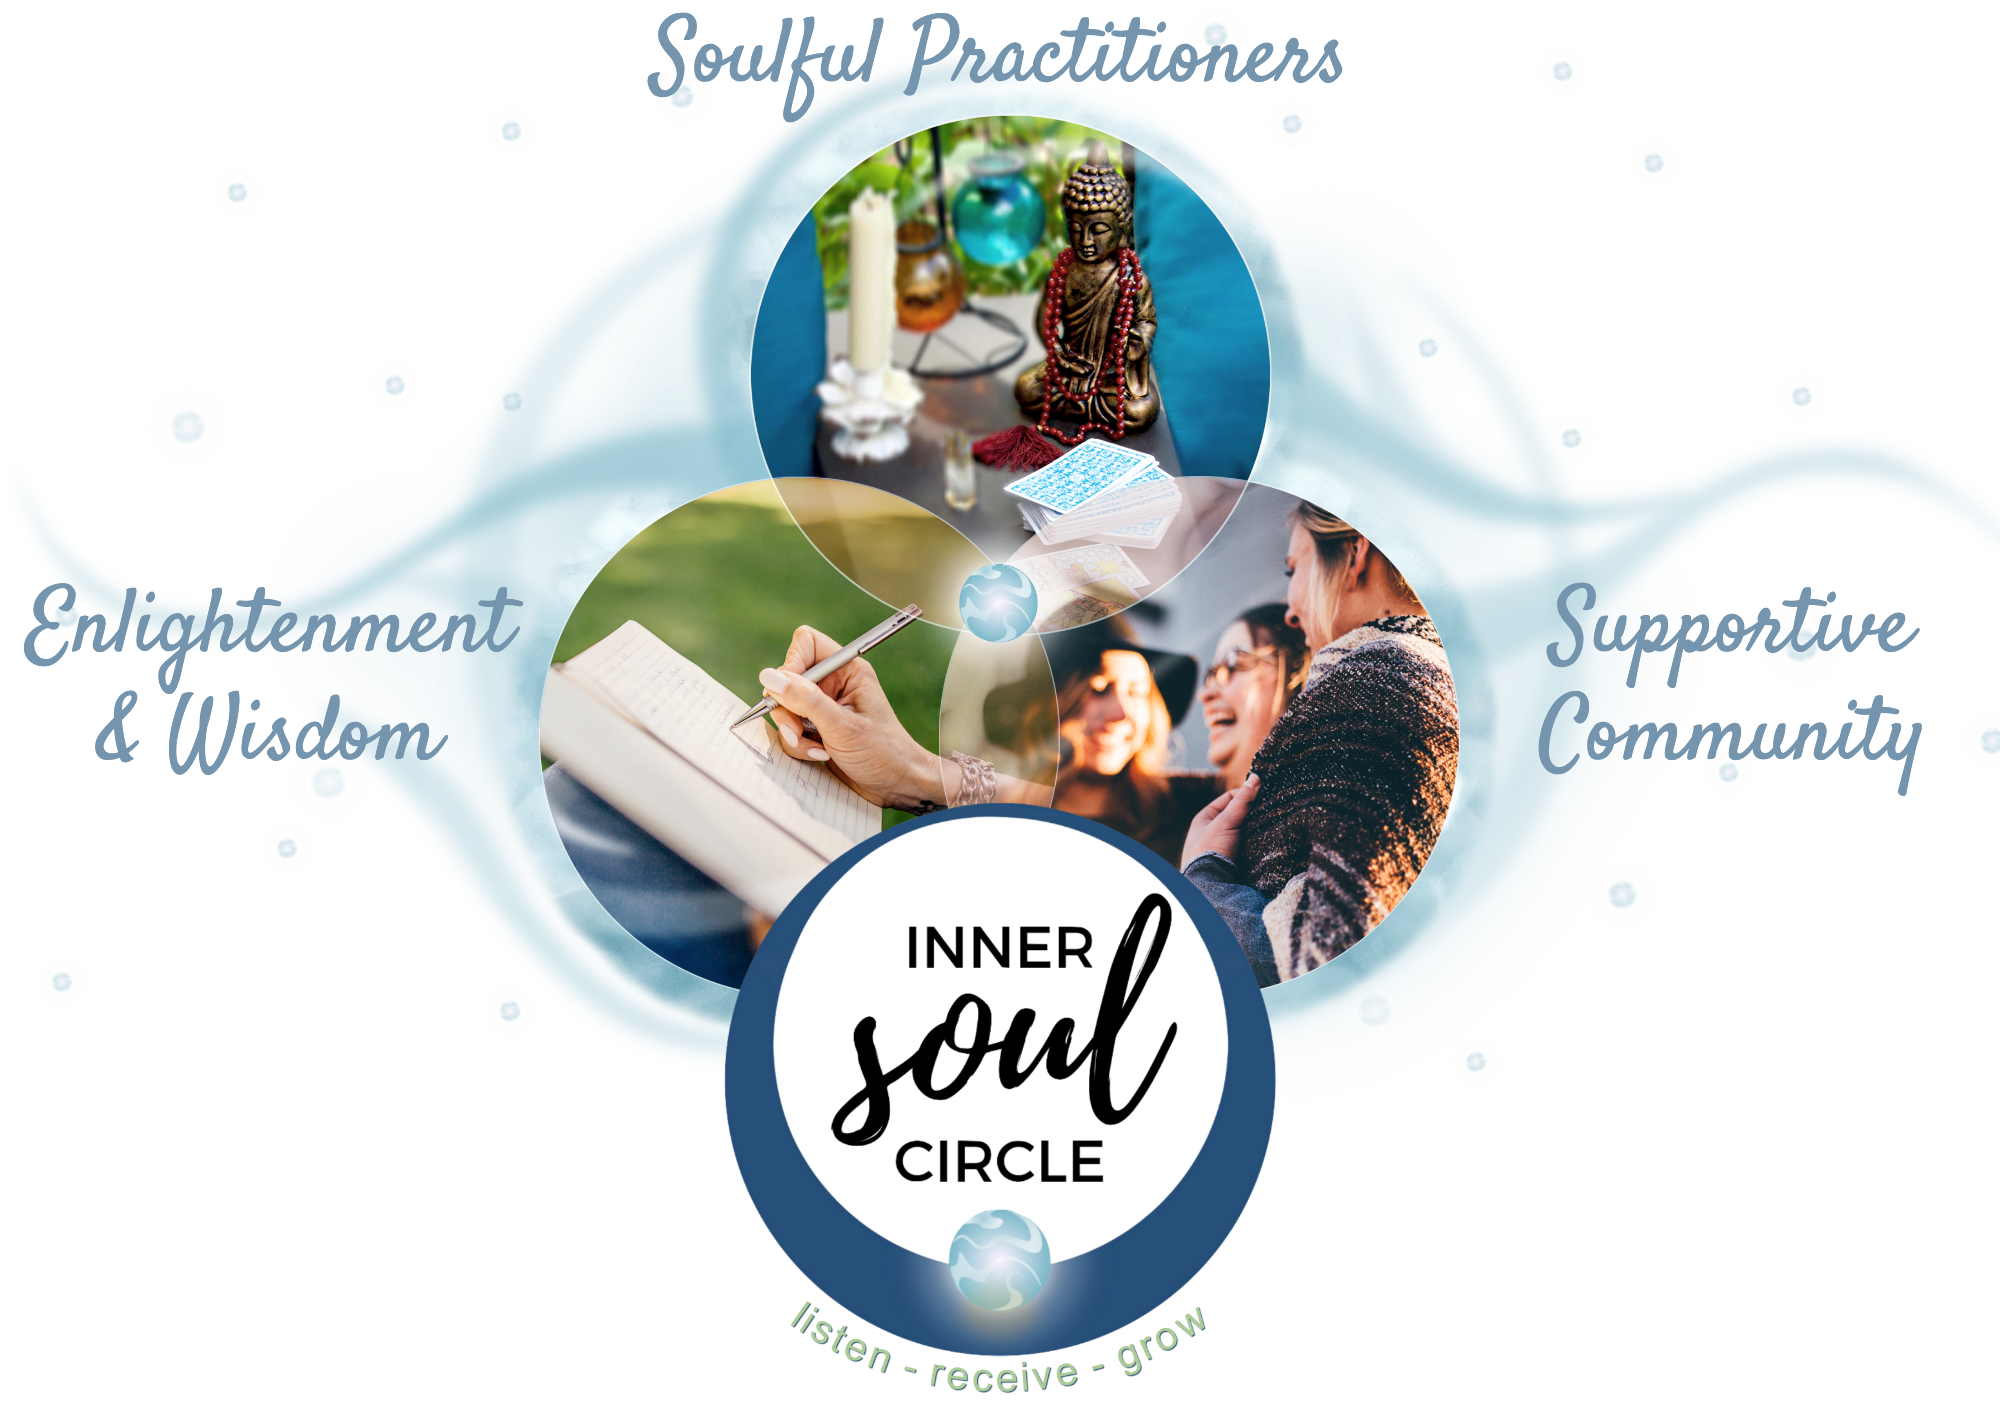 INNER SOUL CIRCLE - A NEW Premier Membership offering community, spiritual growth, exclusive content and member-only BONUSES, along with regular weekly healings & clearings, meditations, and psychic guidance